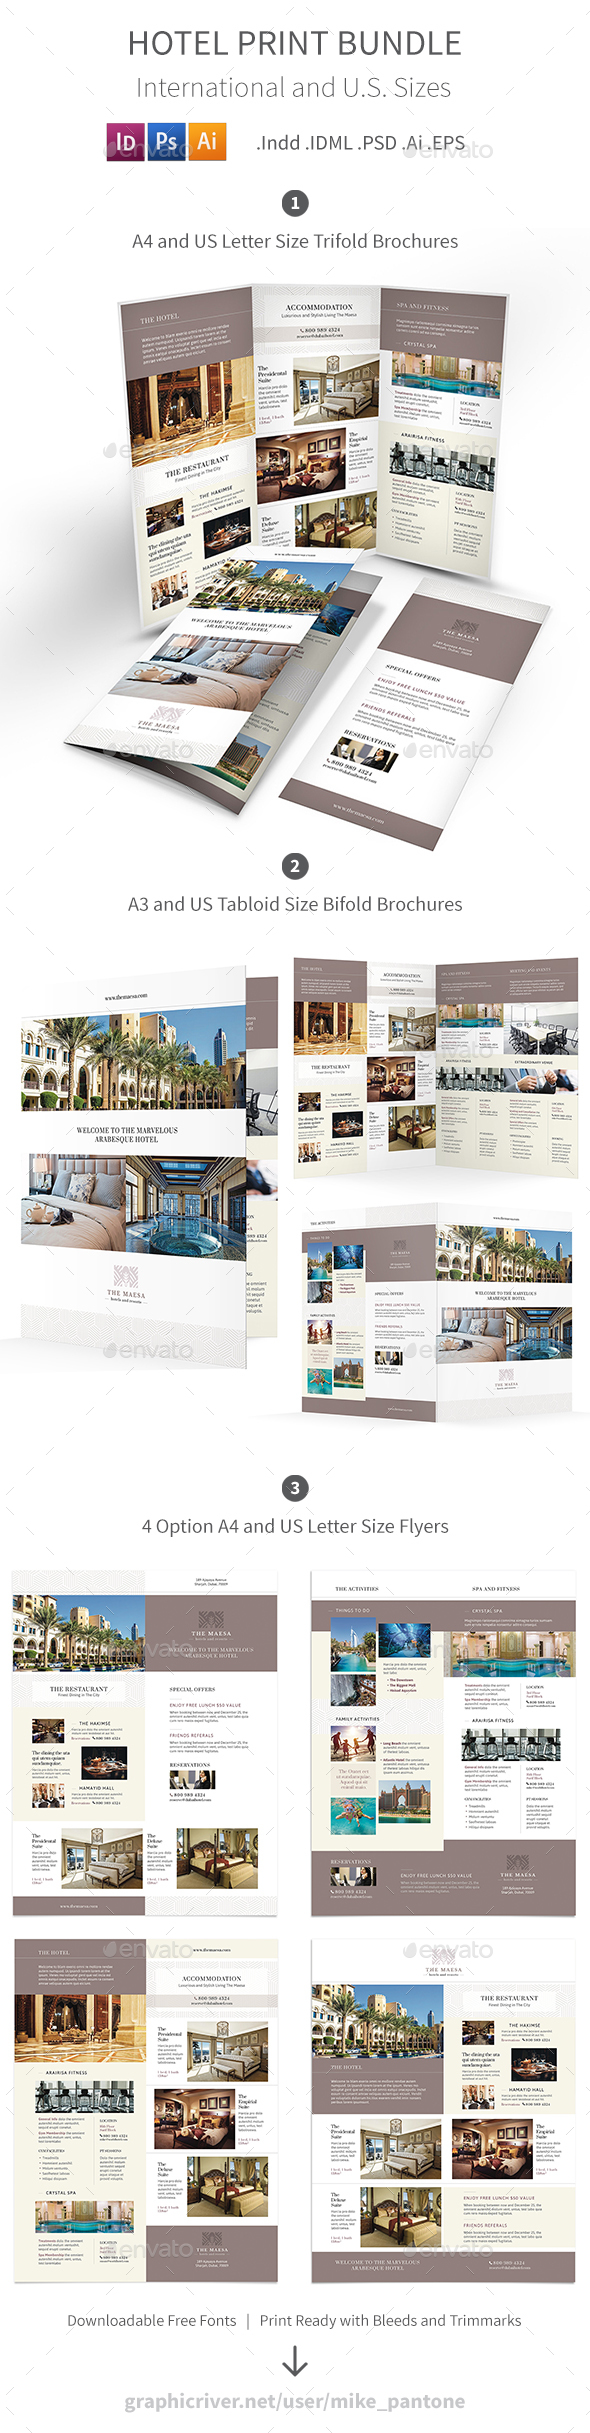 Hotel Print Bundle 7 - Informational Brochures